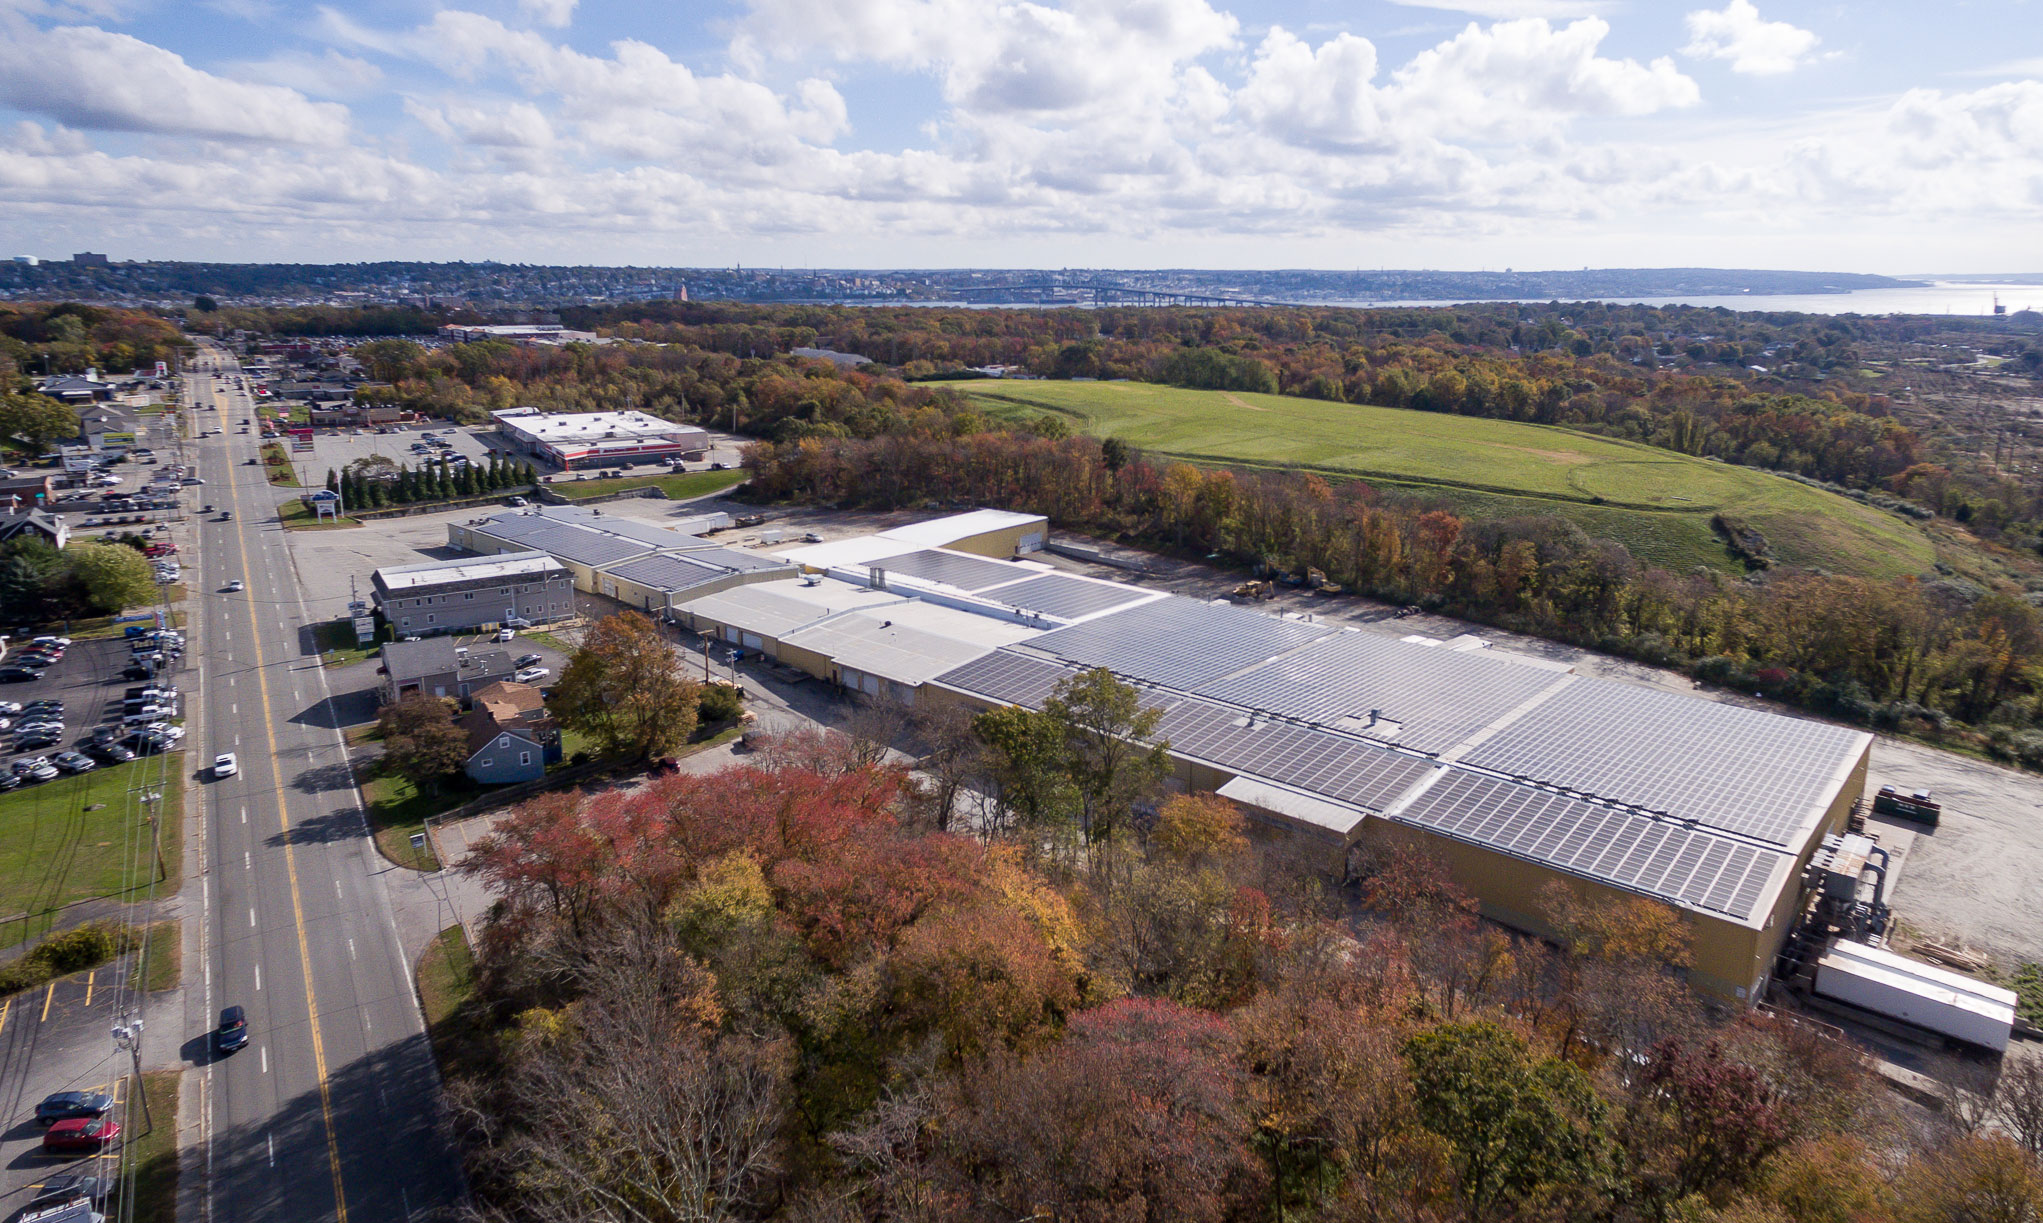 History - North Atlantic Corporation is owned by the Humphrey Family, Peter D. Humphrey and his sons Michael Humphrey and John Humphrey. We employ 430+ employees throughout all business locations. Our corporate office is in Somerset, MA where we have our primary manufacturing facility.